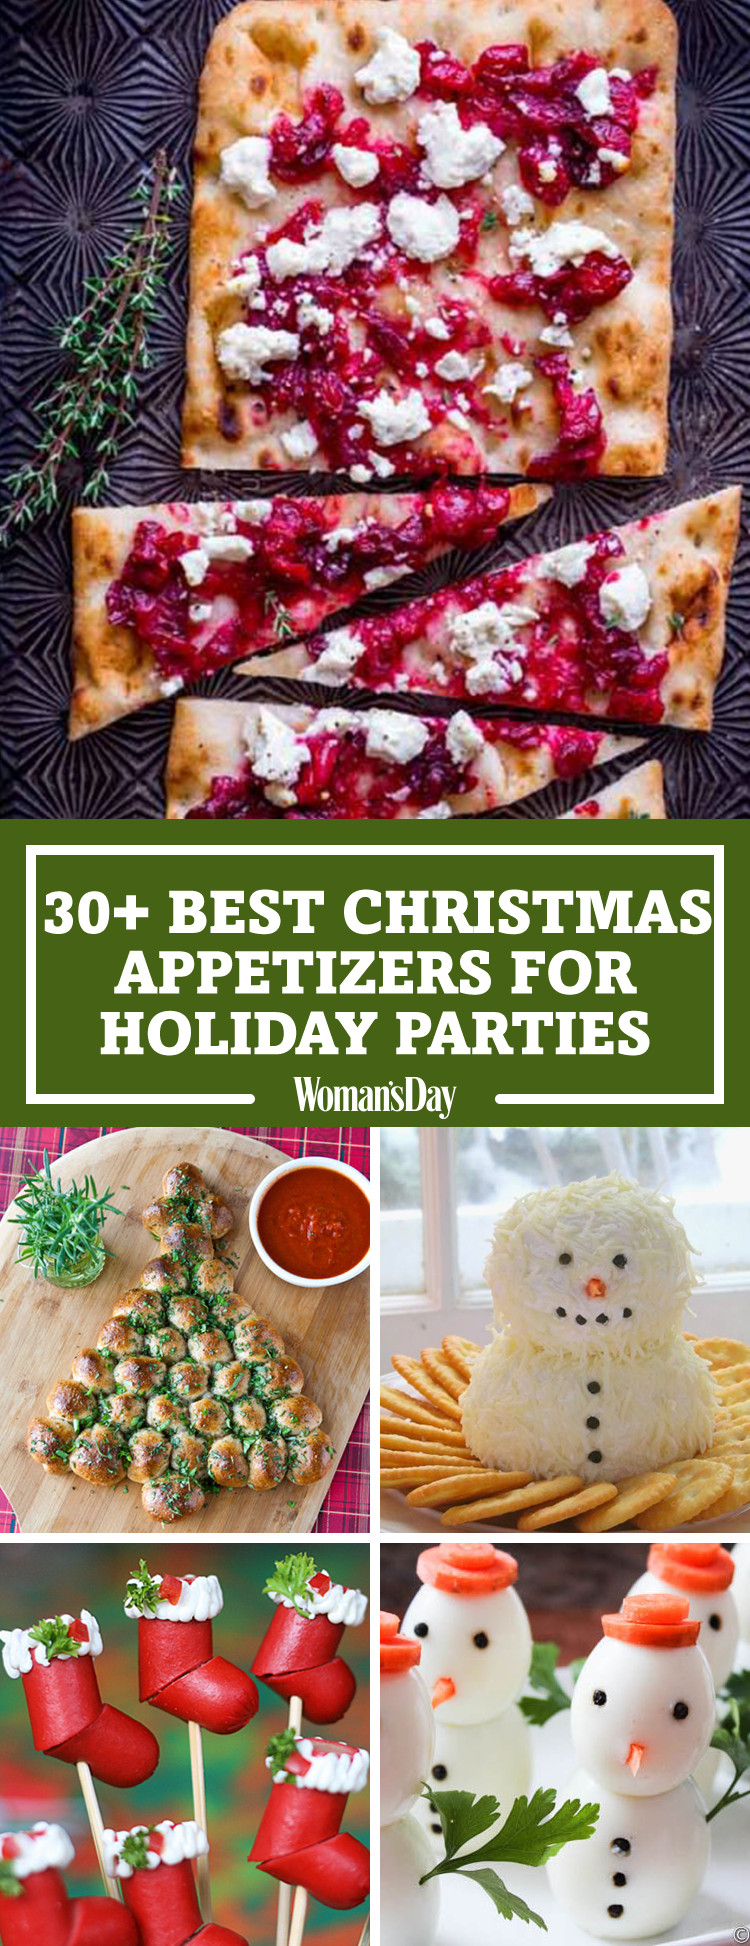 Best Appetizers For Christmas Party  30 Easy Christmas Party Appetizers Best Recipes for